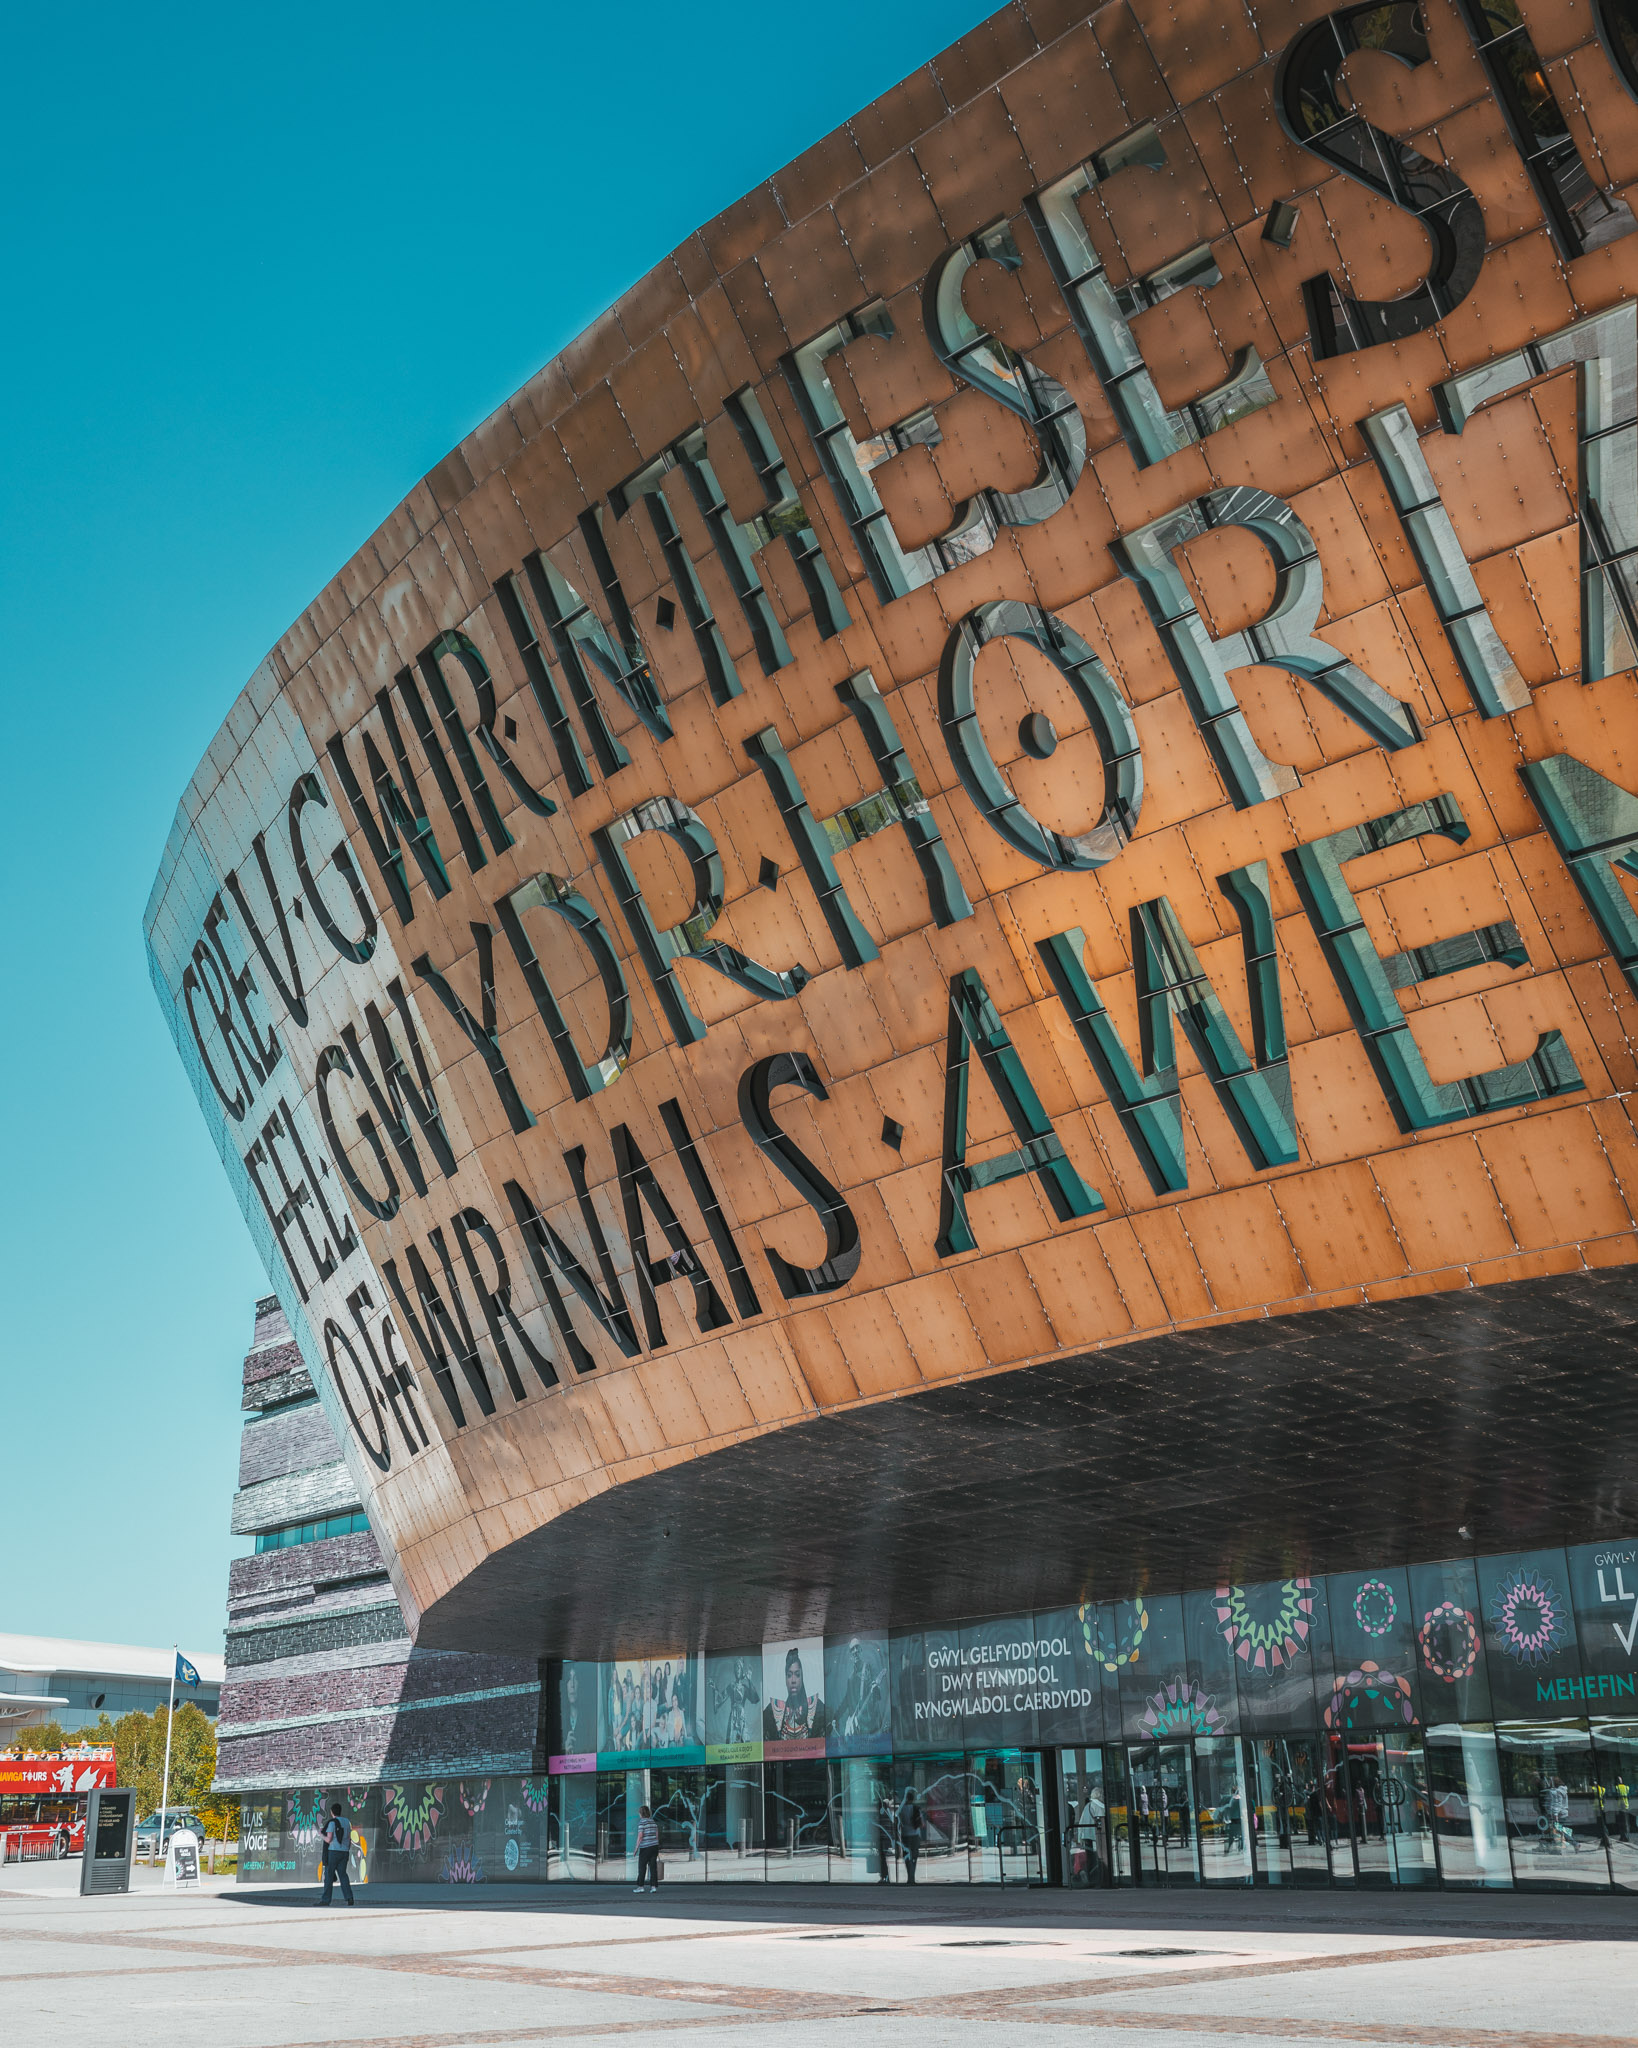 Cardiff Millennium Centre // The Most Beautiful Places to Visit in Wales // #readysetjetset #wales #uk #welsh #travel #photospots #blogpost